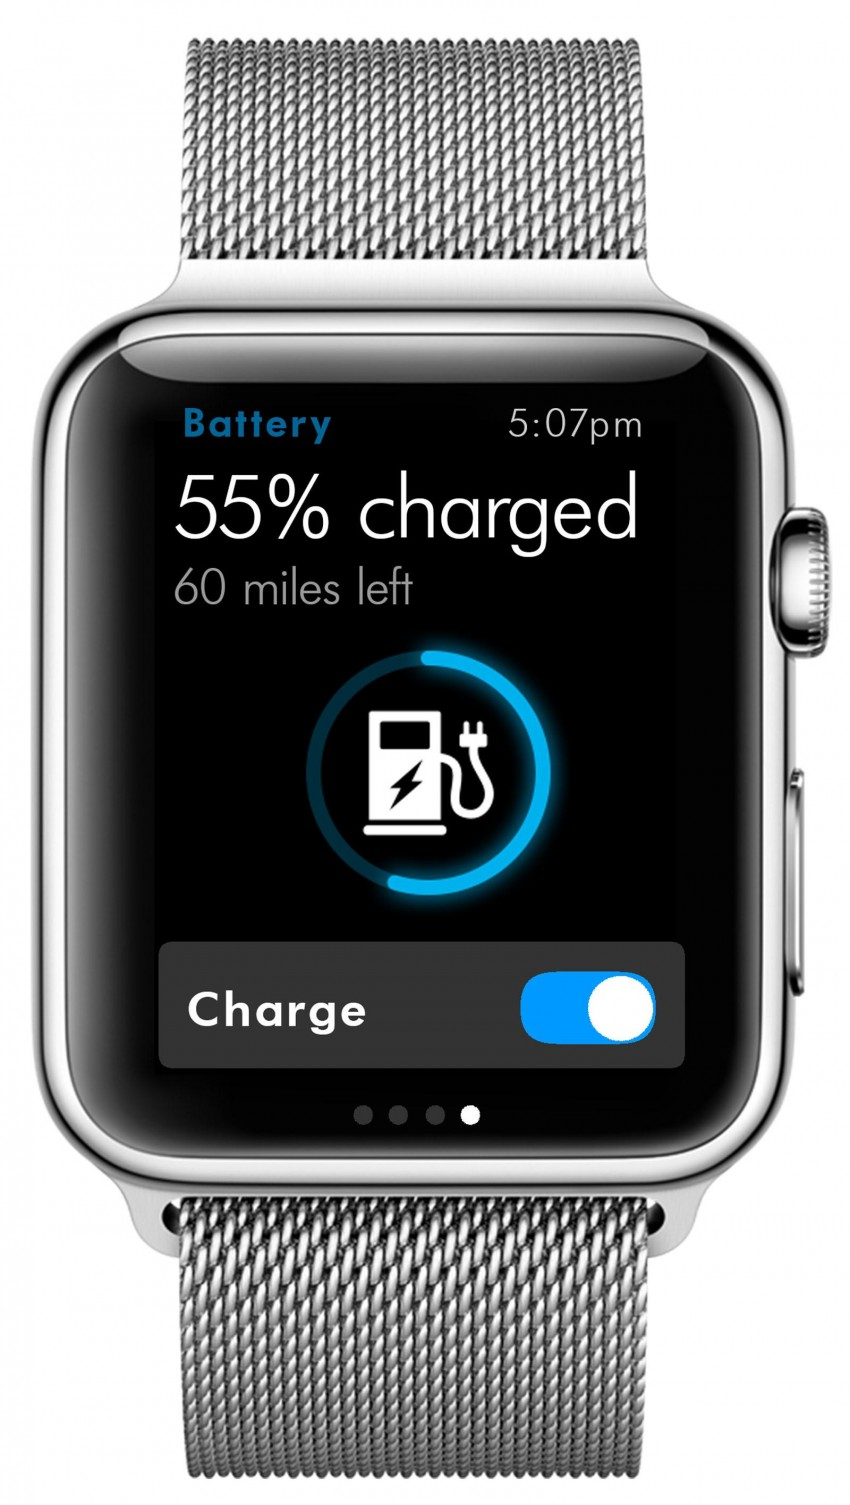 VW introduces Car-Net app for the Apple Watch Image #335487